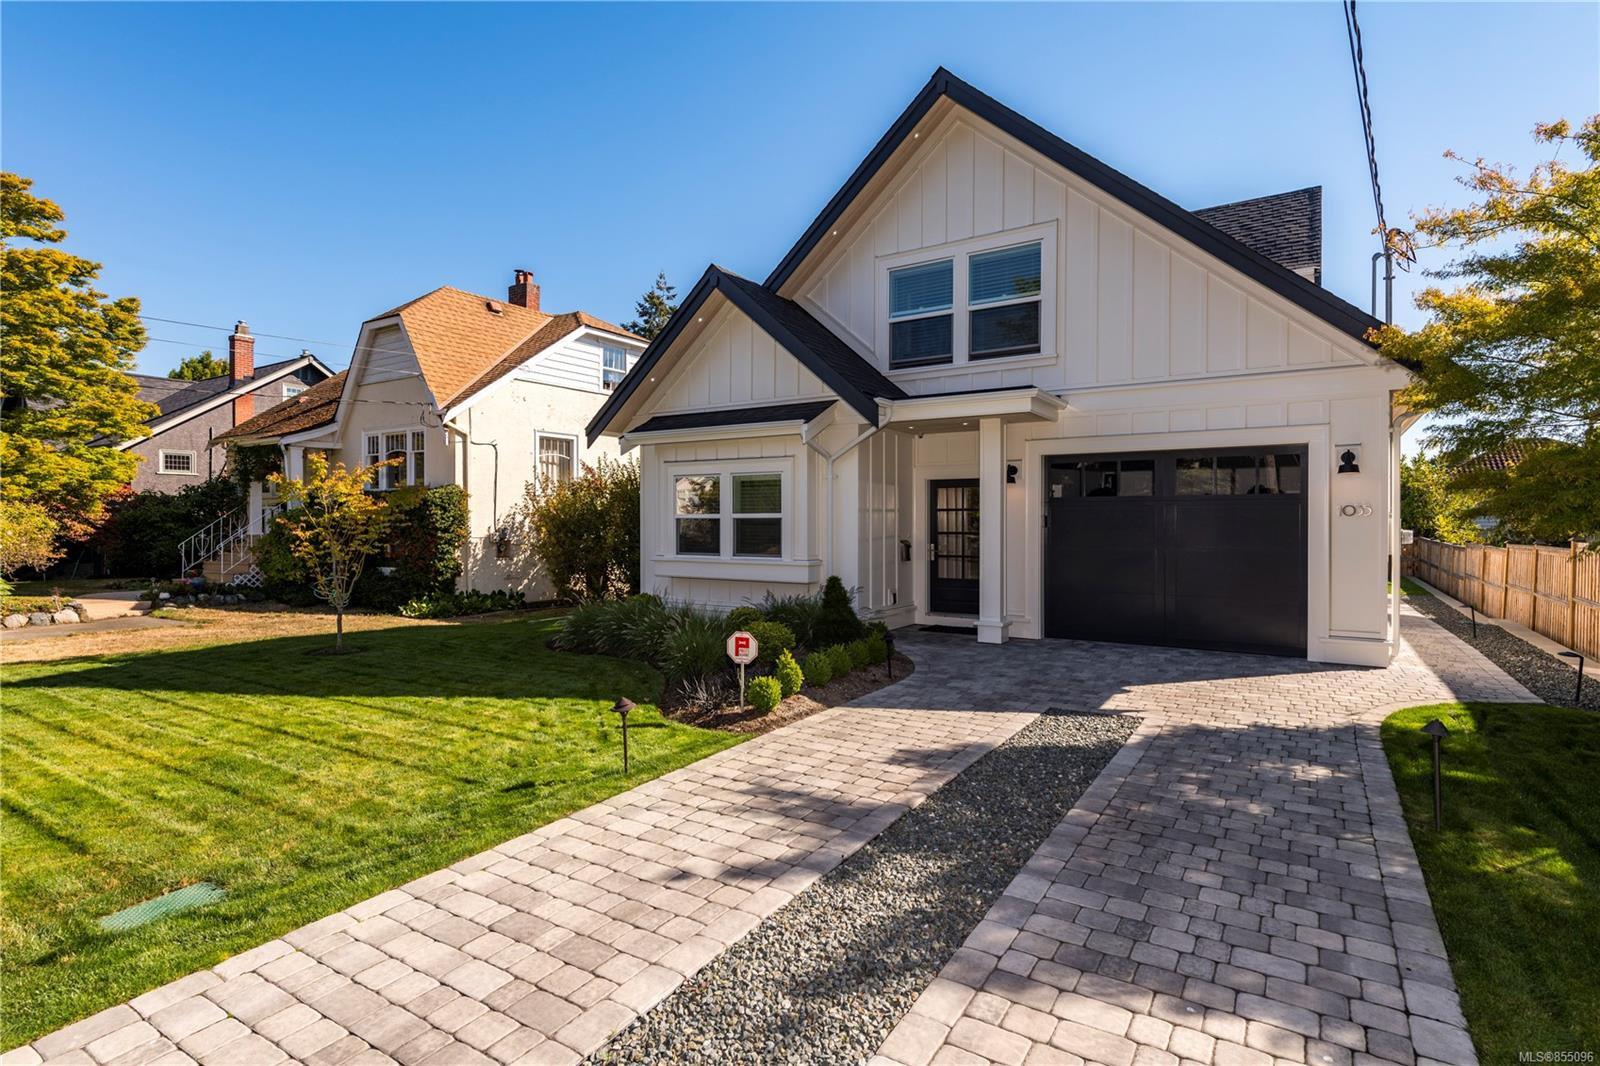 Main Photo: 1035 Roslyn Rd in : OB South Oak Bay Single Family Detached for sale (Oak Bay)  : MLS®# 855096